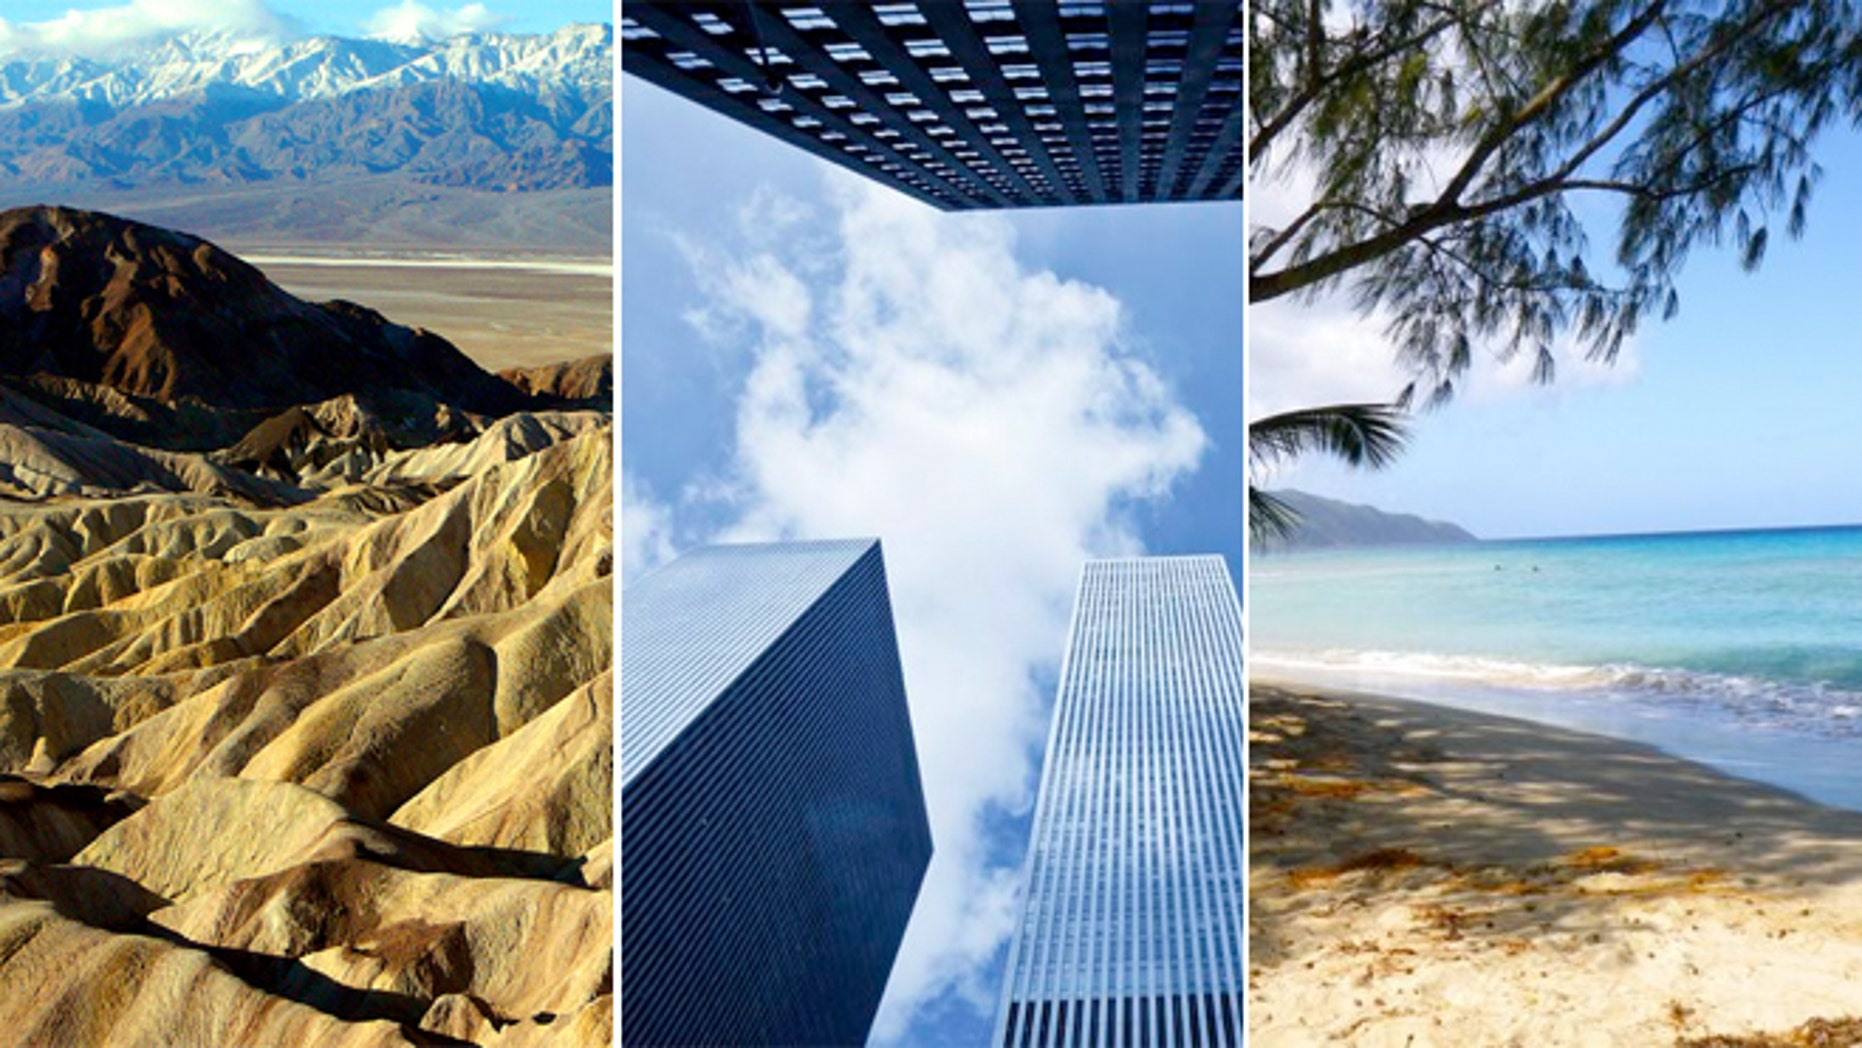 Death Valley, New York City and St. Croix are some of the most extreme places worth visiting.